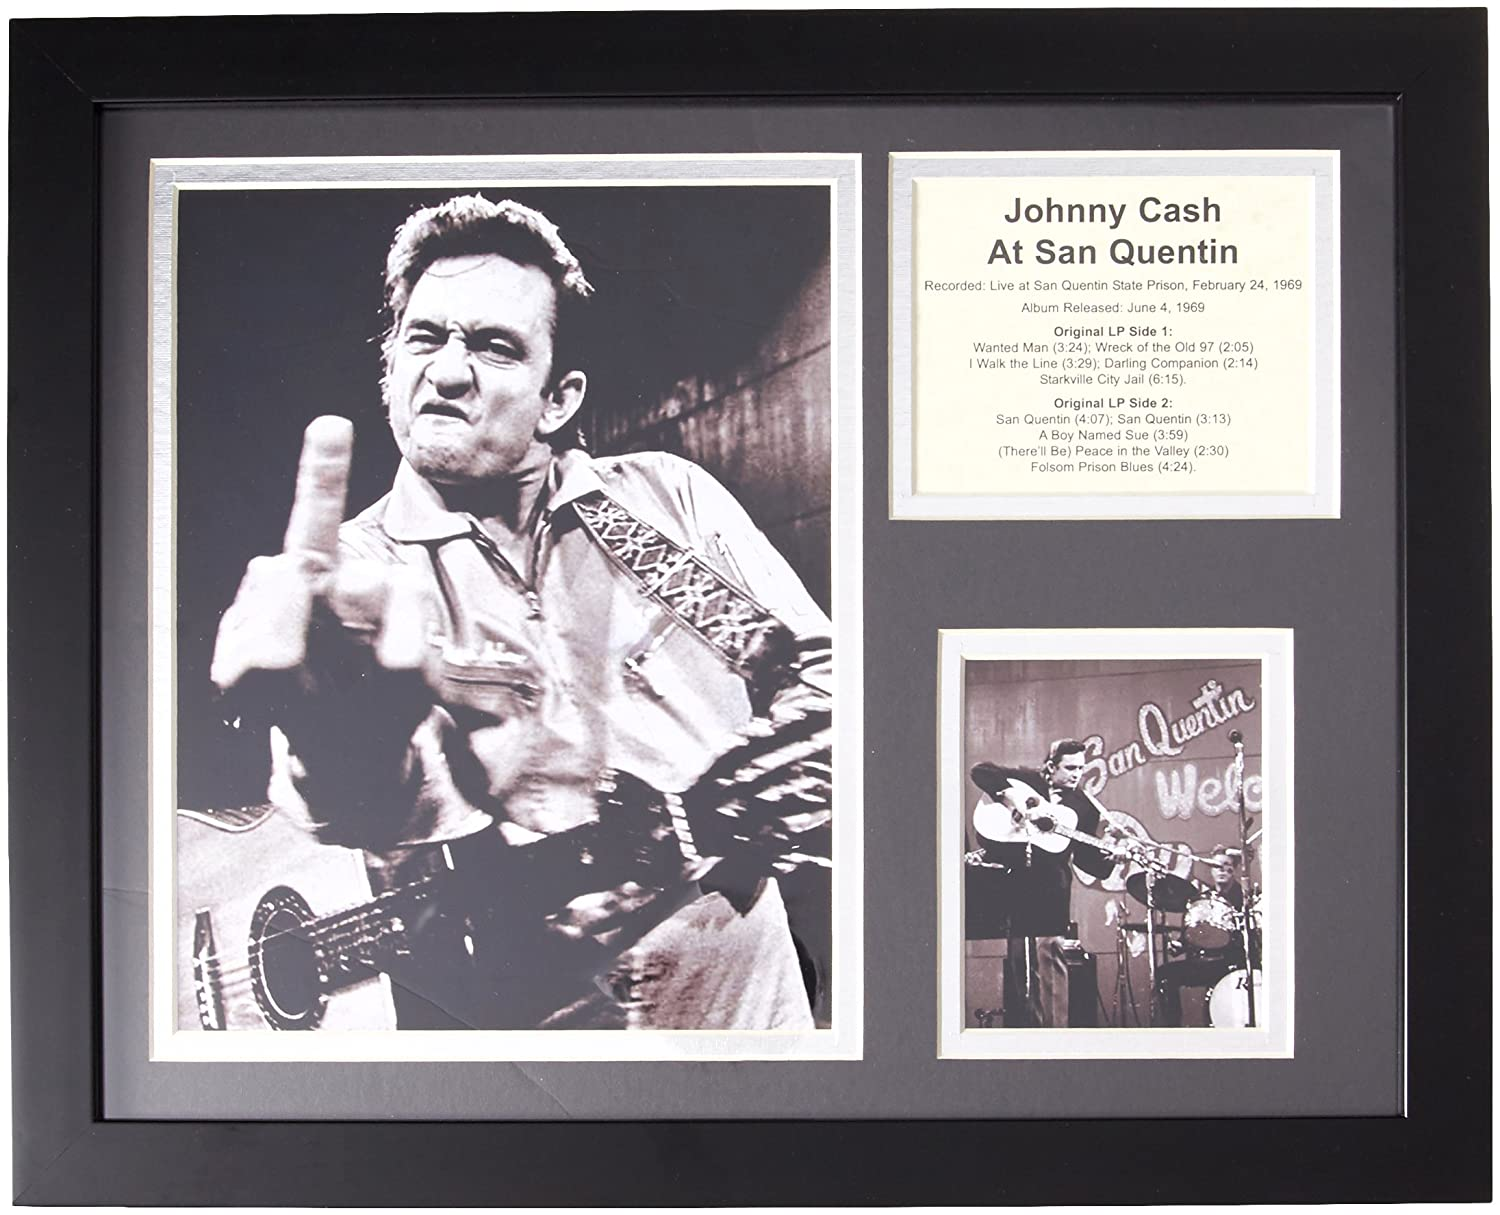 Legends Never Die Johnny Cash at San Quentin Framed Photo Collage ...